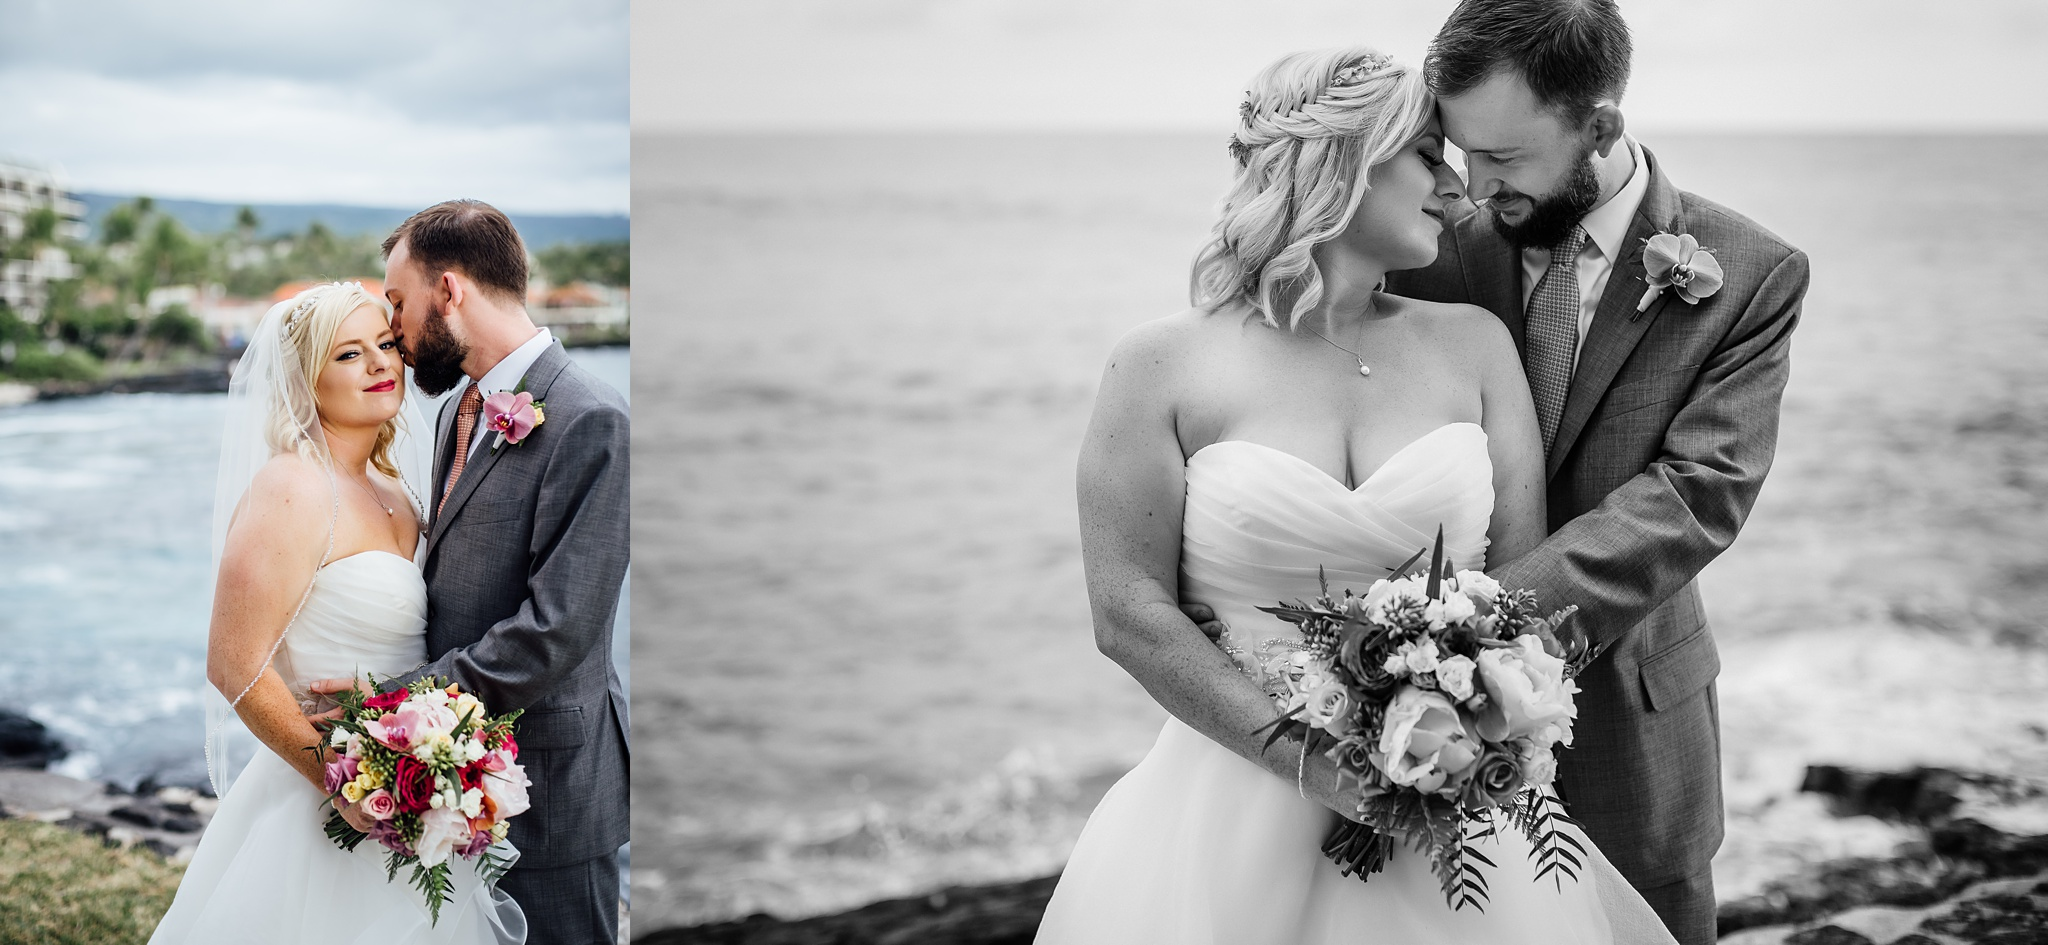 Intimate moments during wedding in kona big island Hawaii